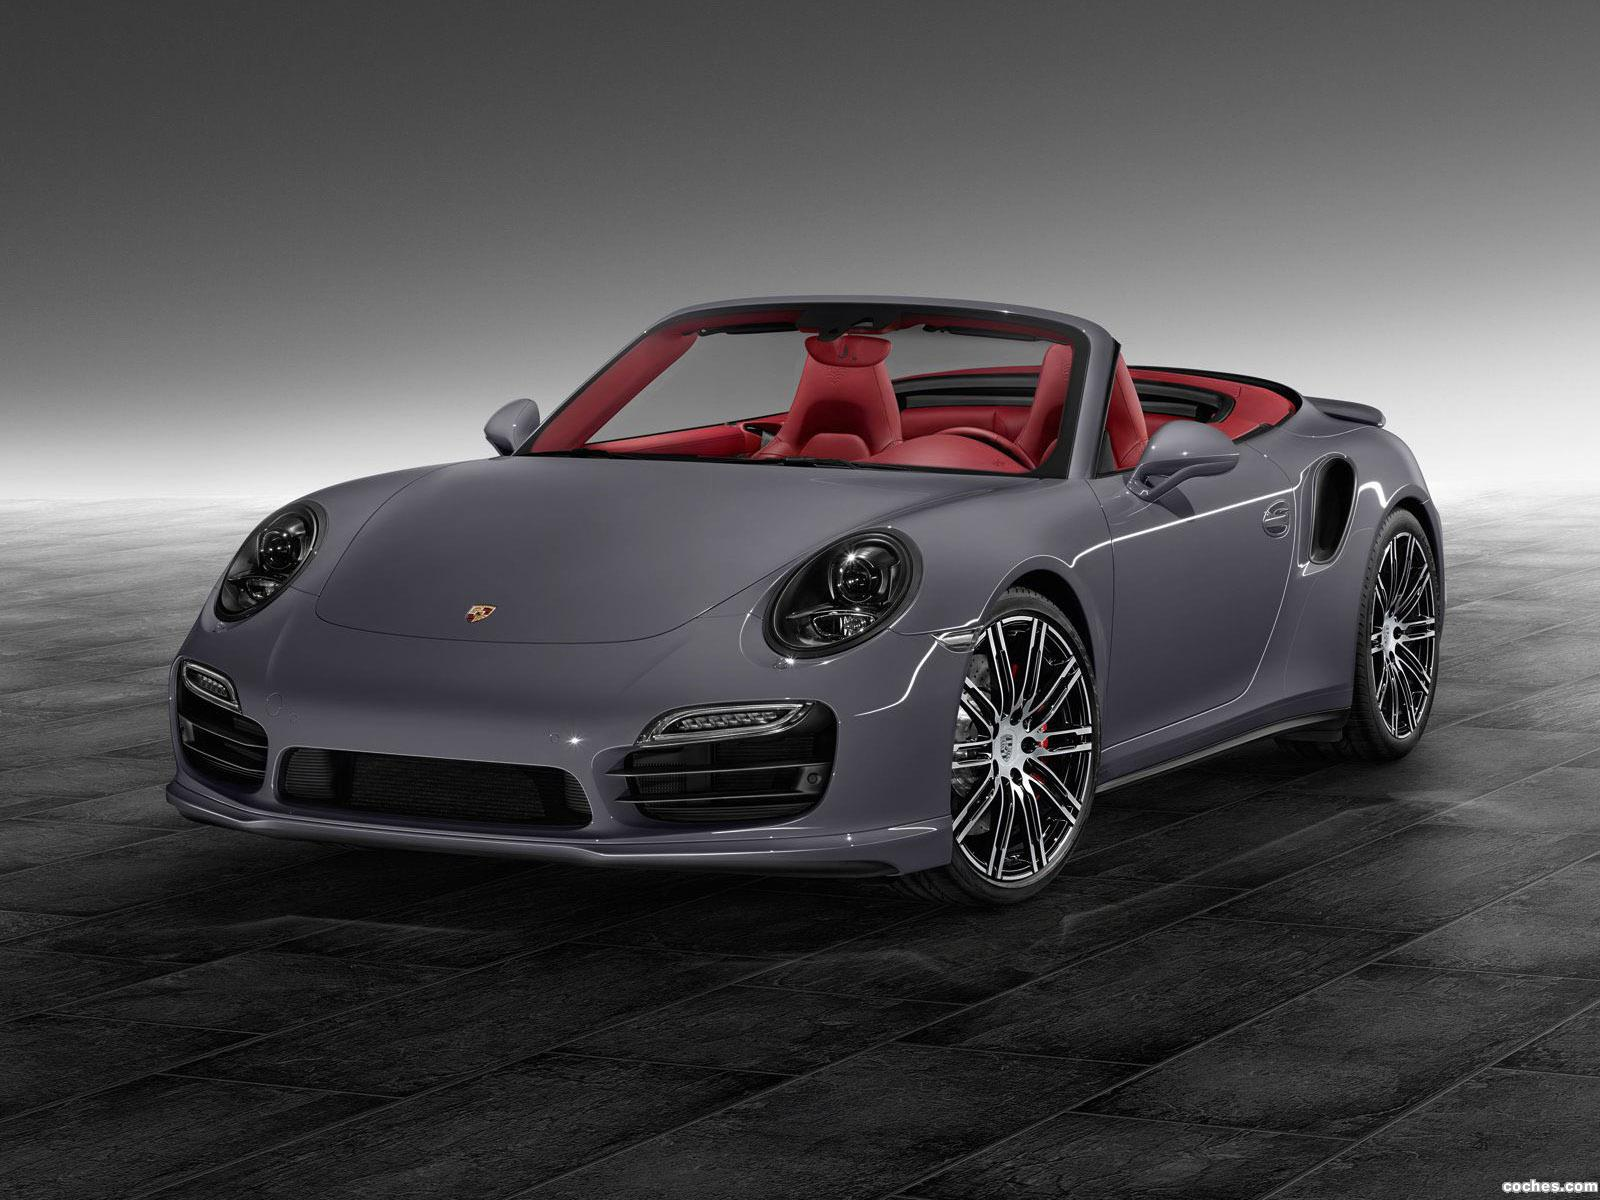 Foto 0 de Porsche 911 Turbo Cabriolet by Exclusive 2014